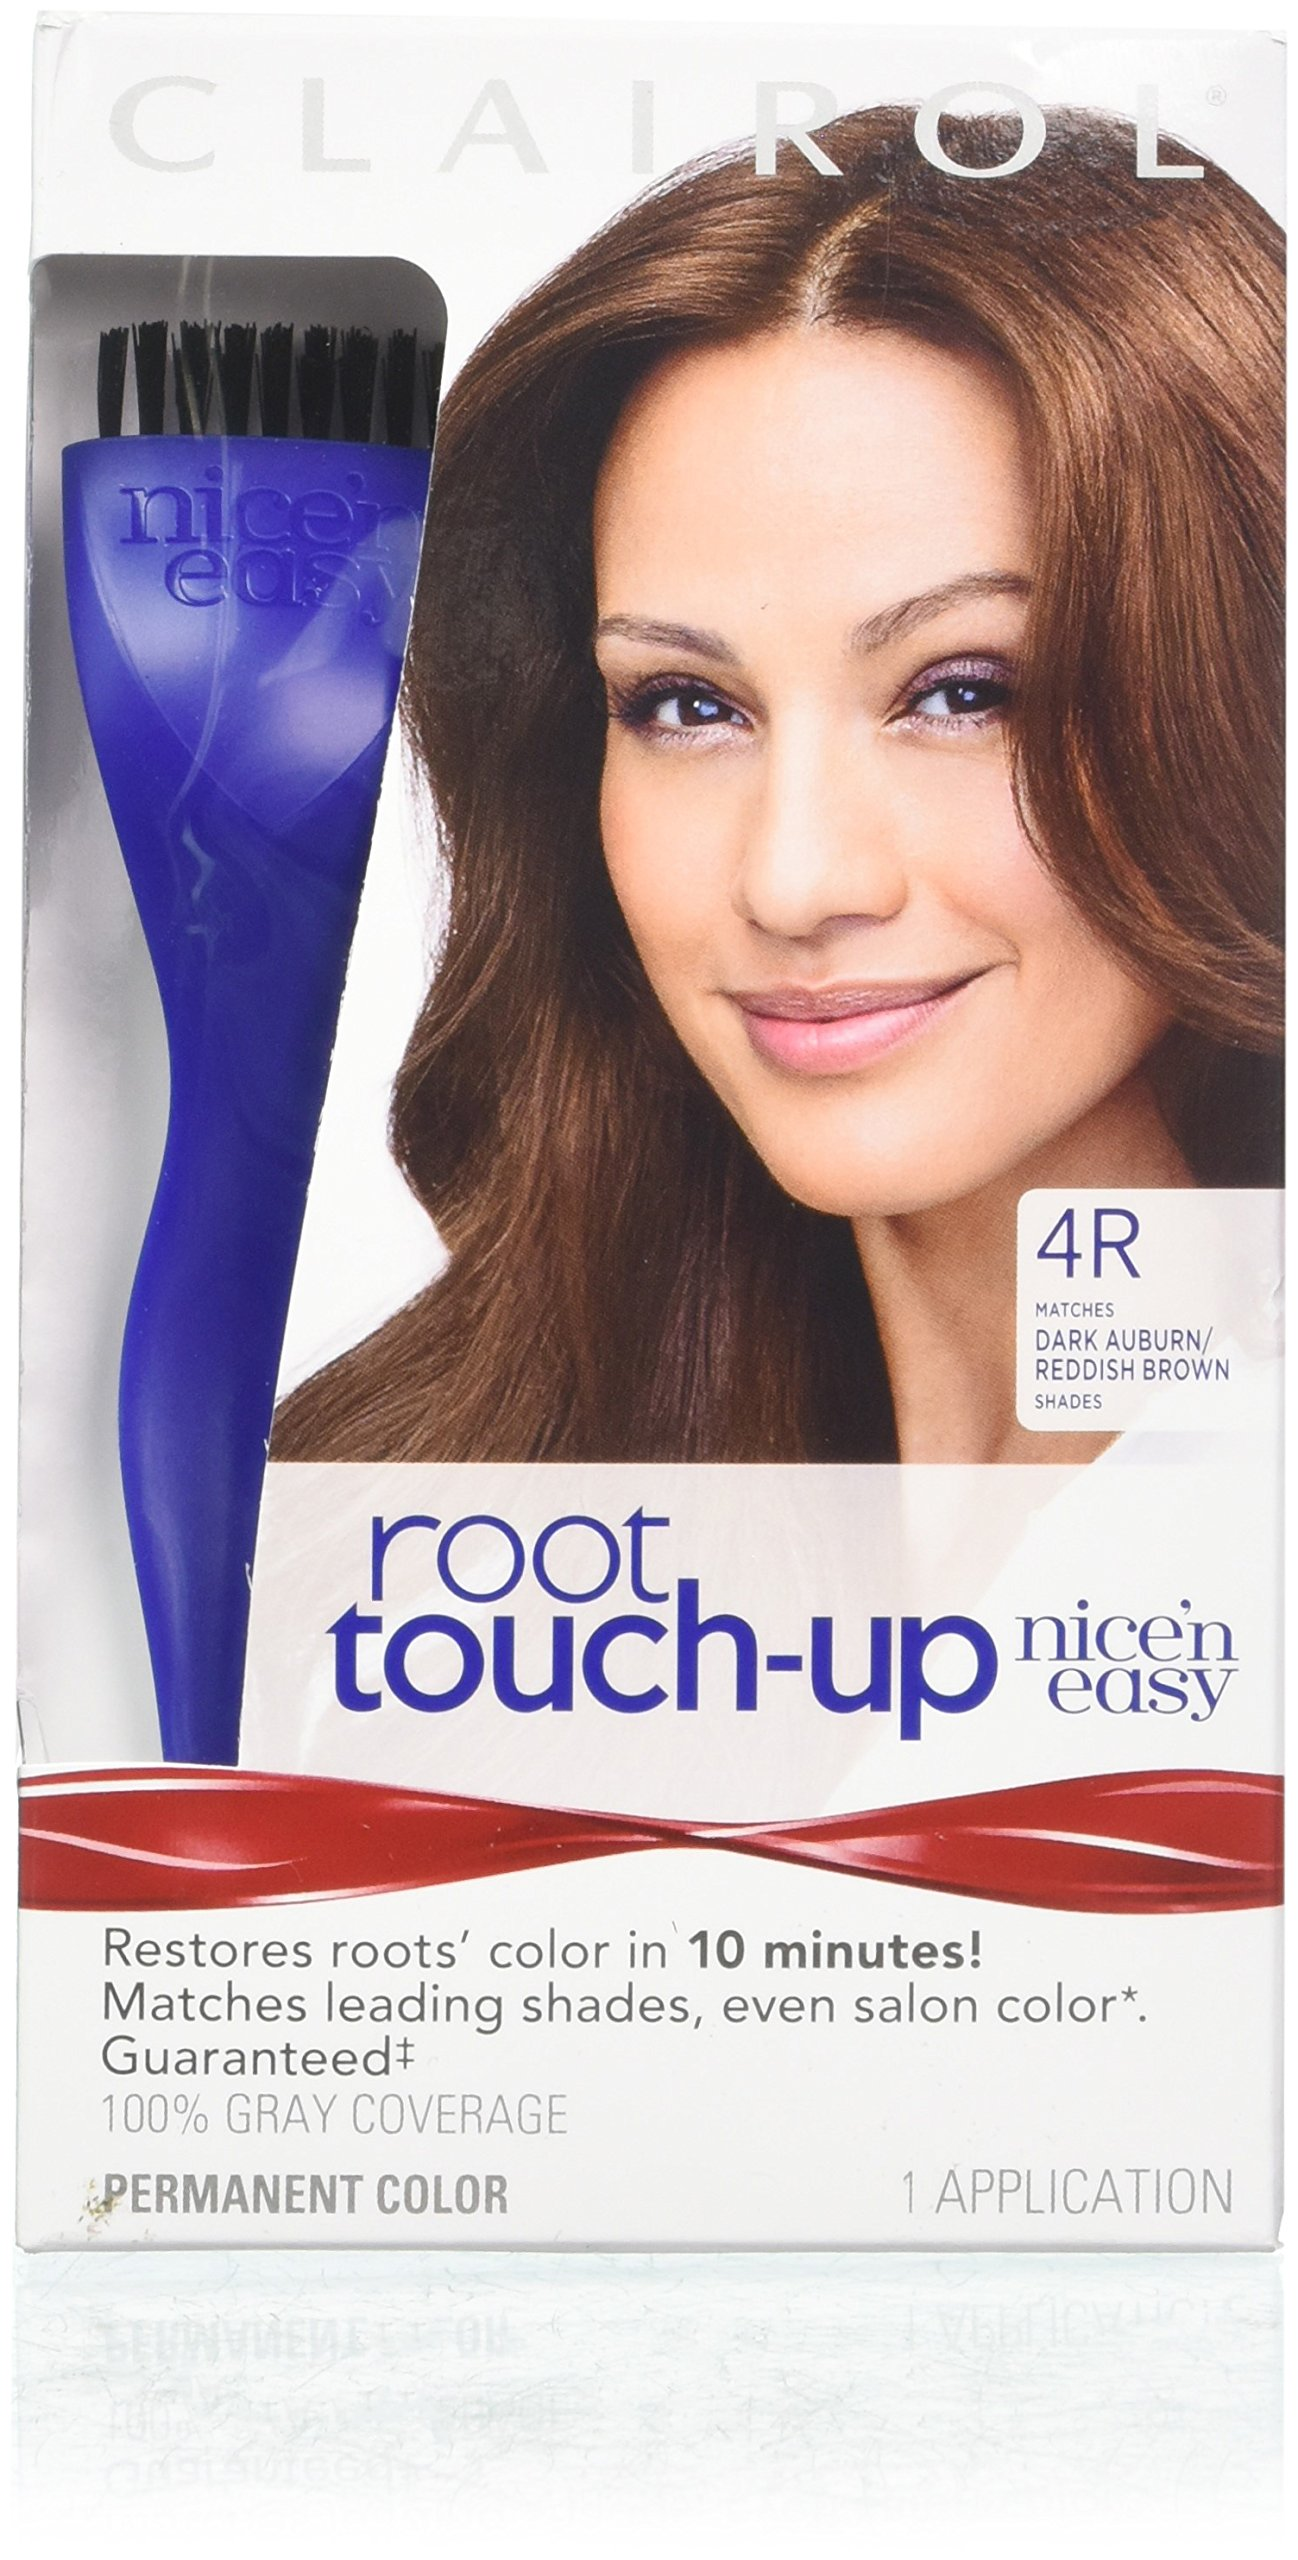 Clairol Nice 'n Easy Root Touch-Up 4R Kit (Pack of 2), Matches Dark Auburn/Reddish Brown Hair Color Shades, Superior Grey Coverage by Clairol